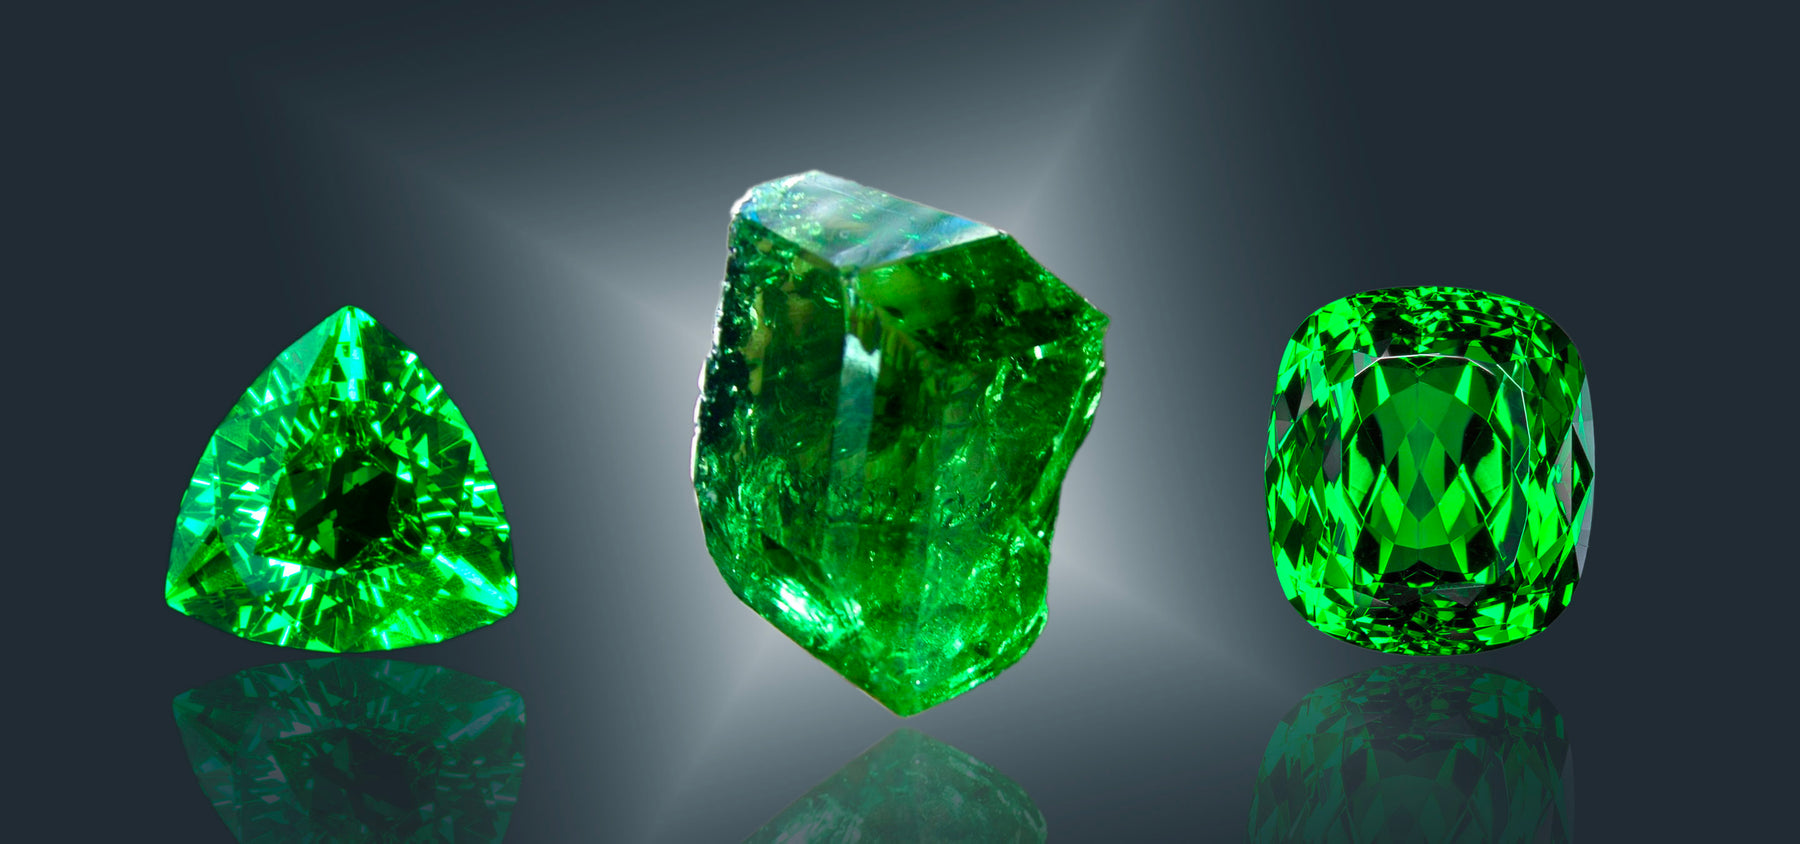 Tsavorite green garnet gemstone crystal metaphysical healing properties & meaning